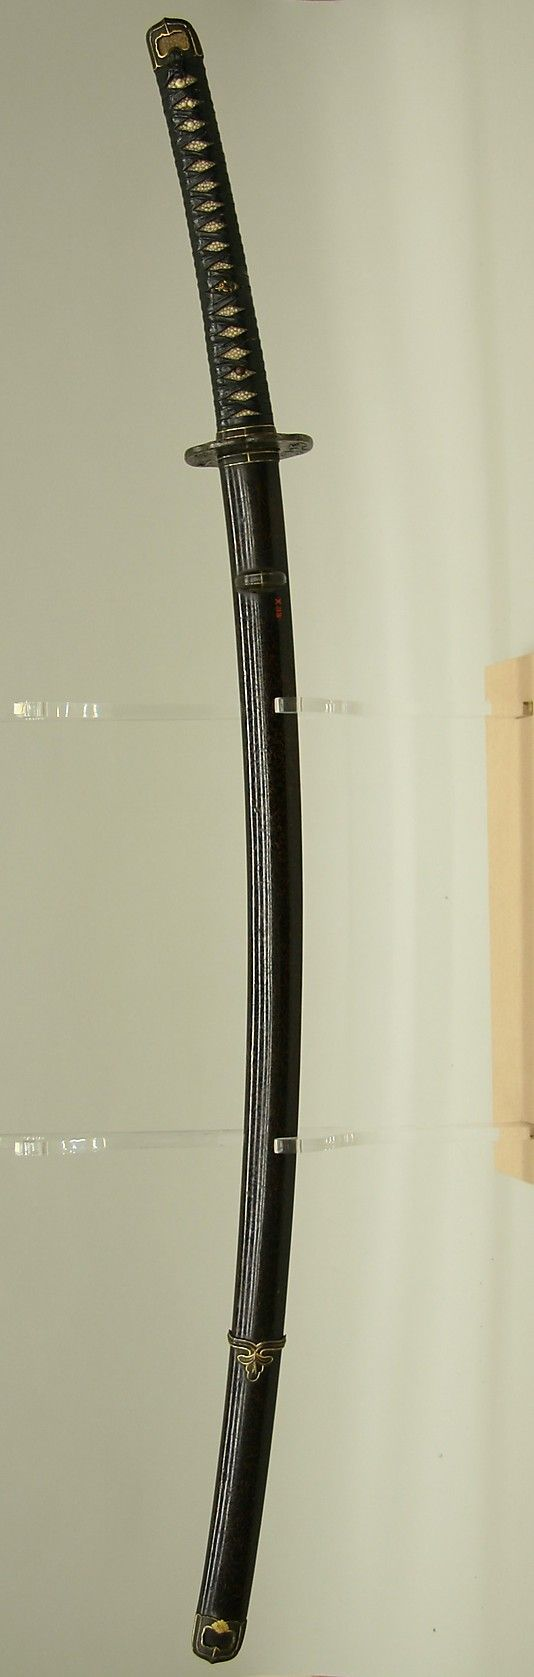 Japanese sword - Katana (Long Sword), 16th century